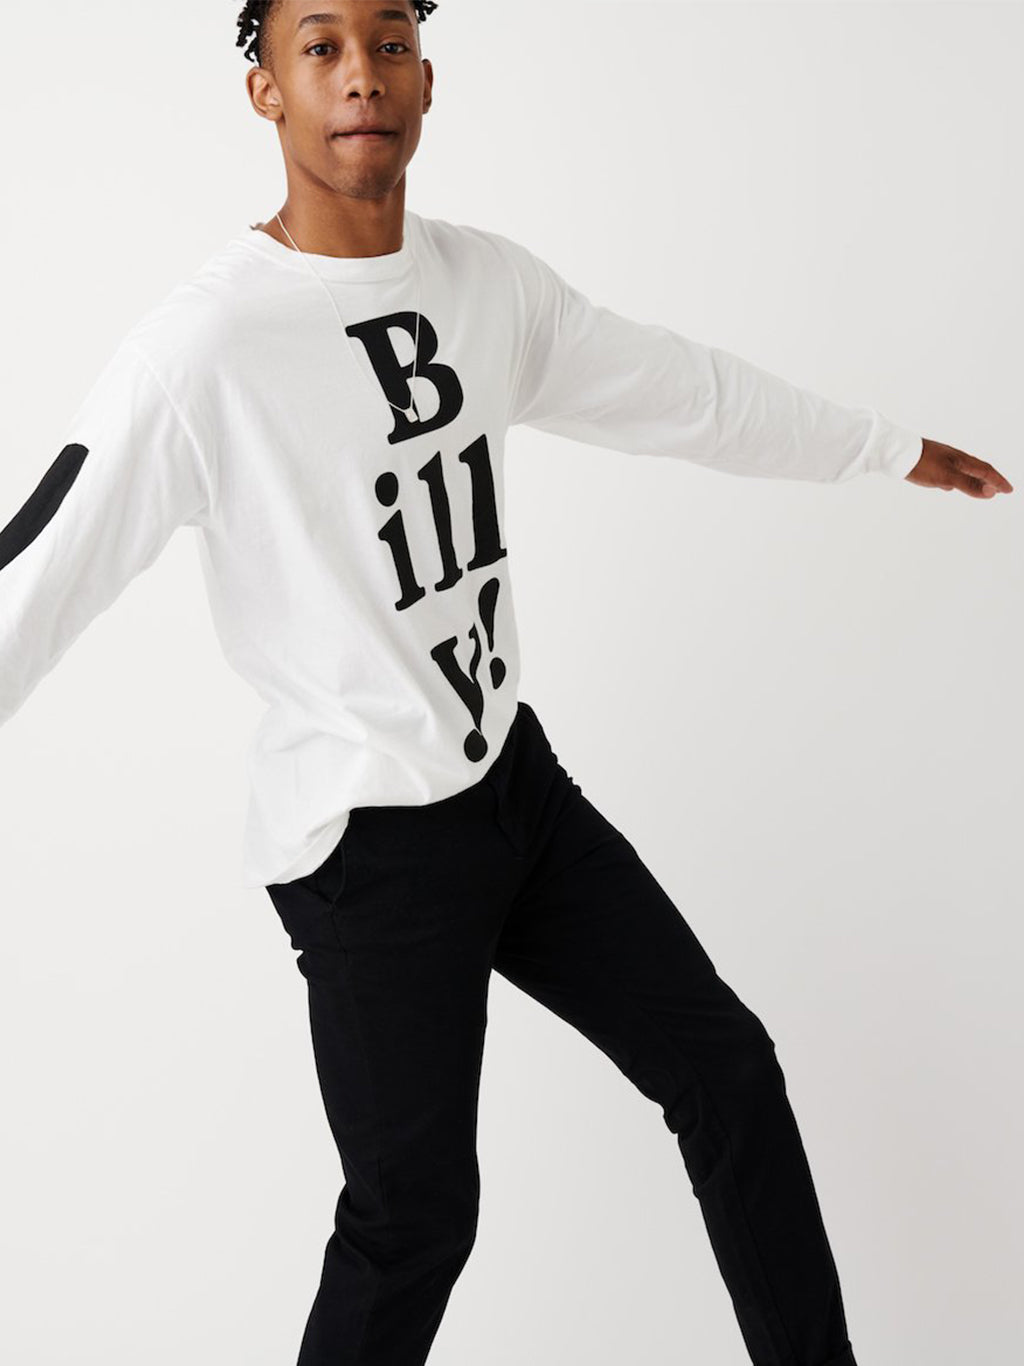 White Long Sleeved Tee with Black Billy! (archived)